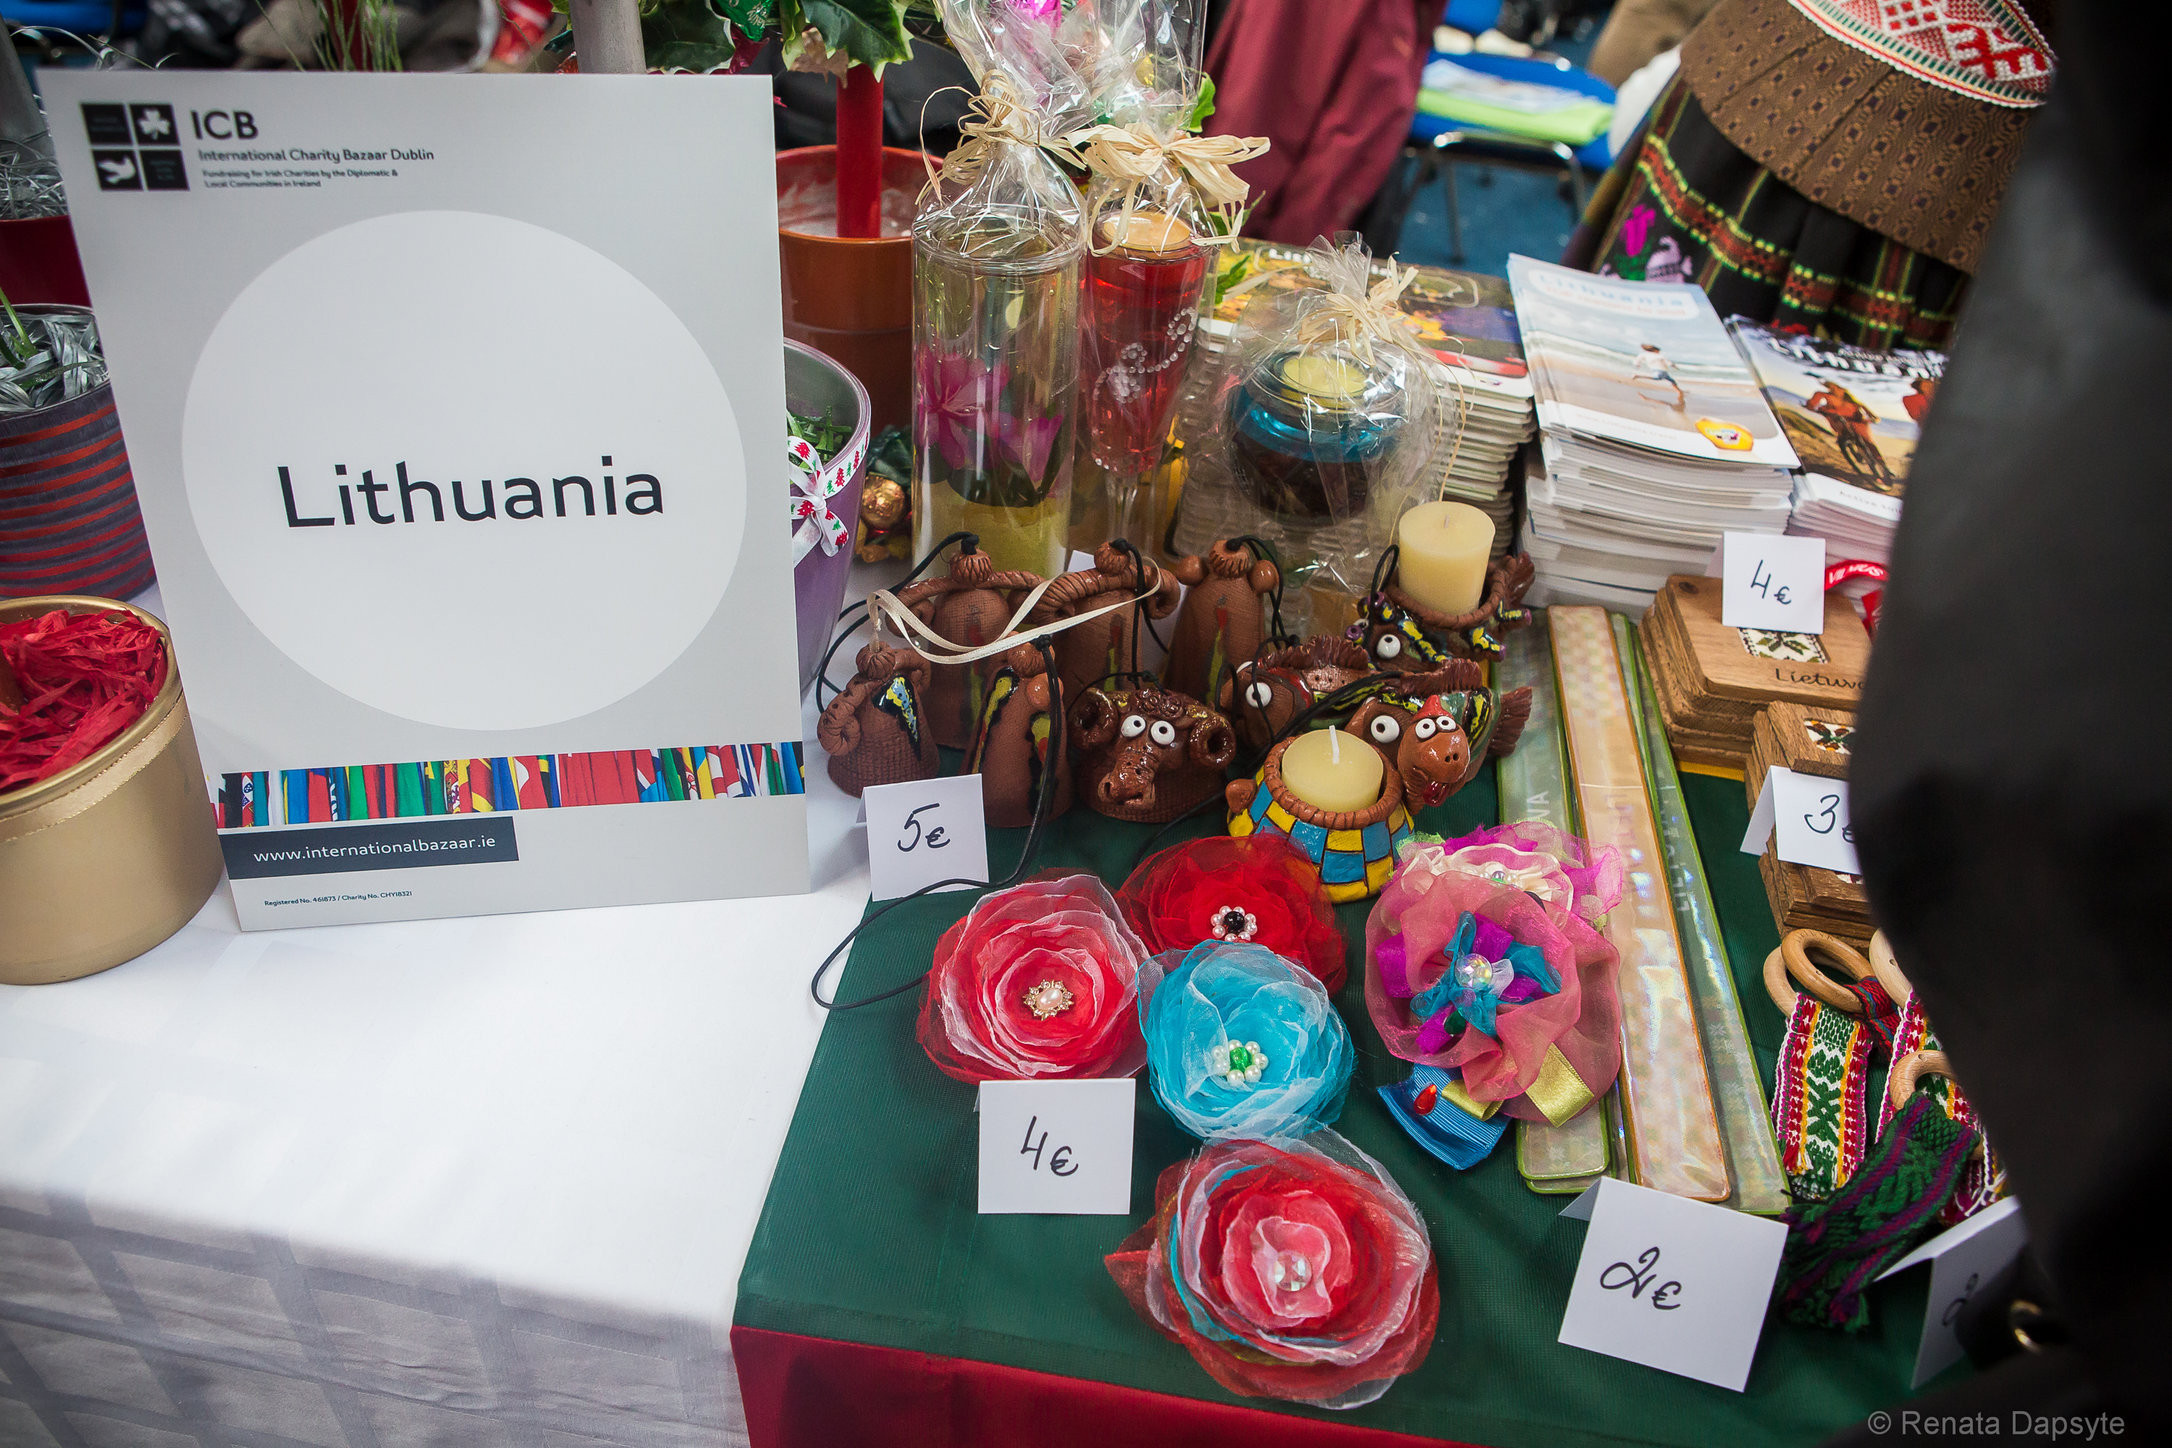 014_International Charity Bazaar Dublin 2013.JPG